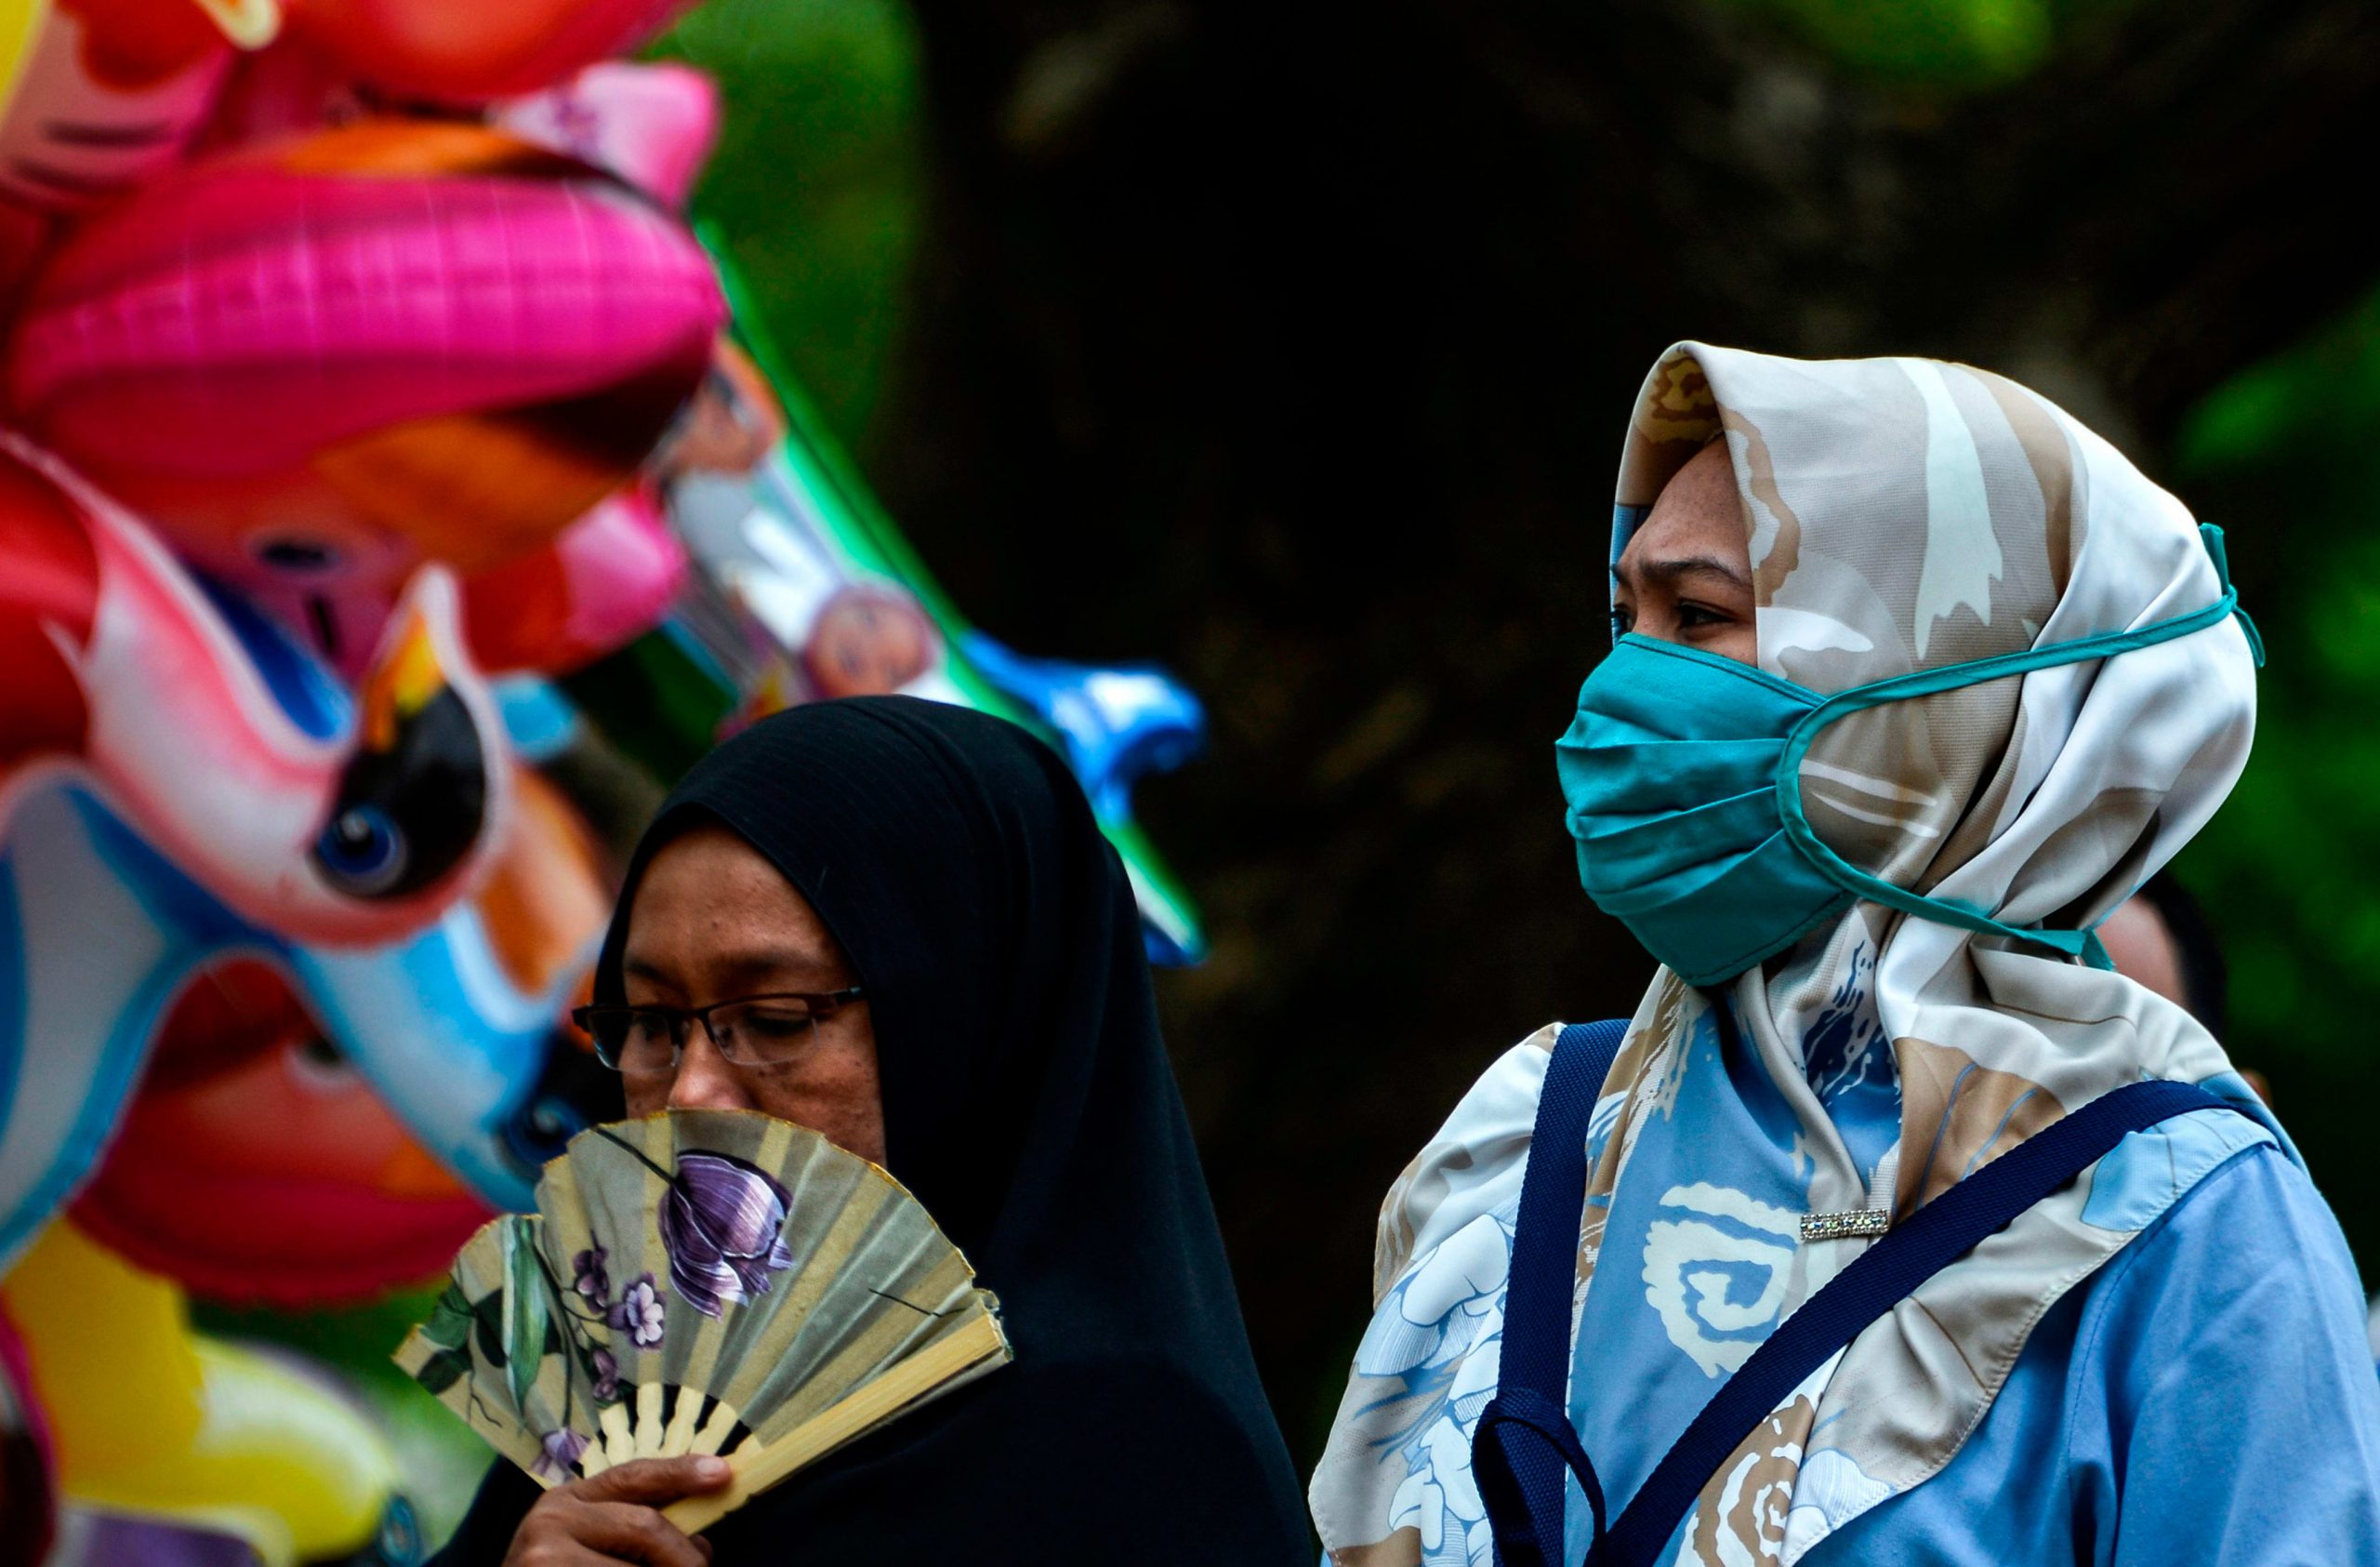 Emerging market debt holding up even with fears economies could be impacted by virus